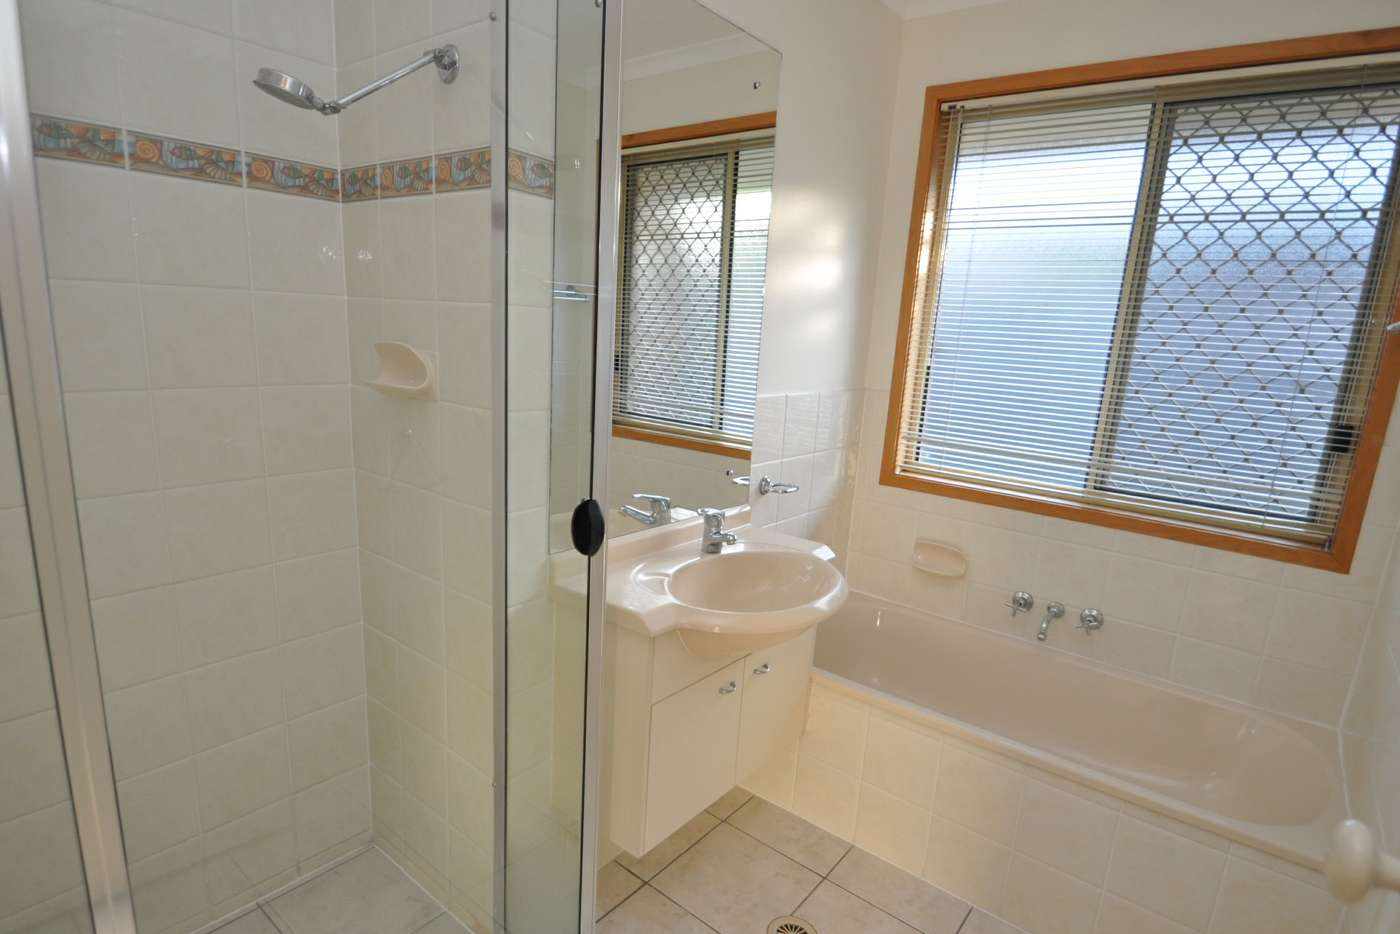 Sixth view of Homely house listing, 139 Petersen St, Wynnum QLD 4178